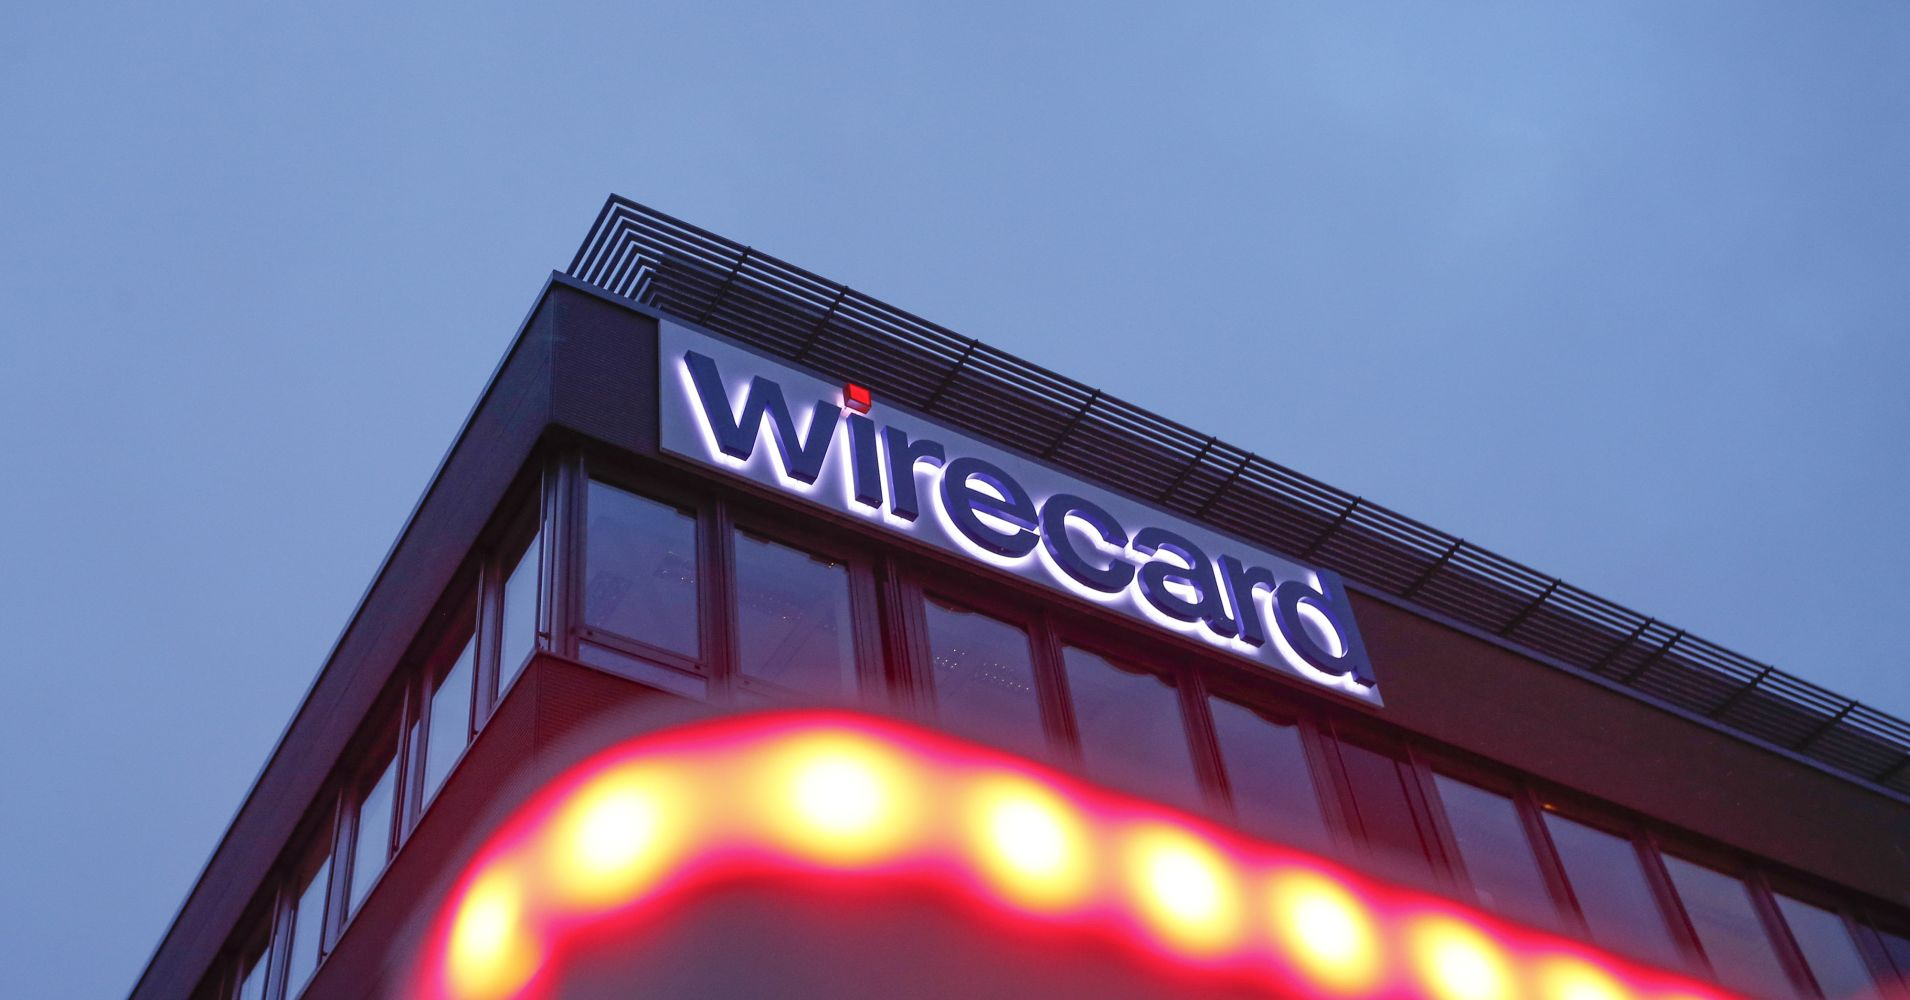 An illuminated logo sits on the exterior of Wirecard's headquarters in the Aschheim district of Munich, Germany.